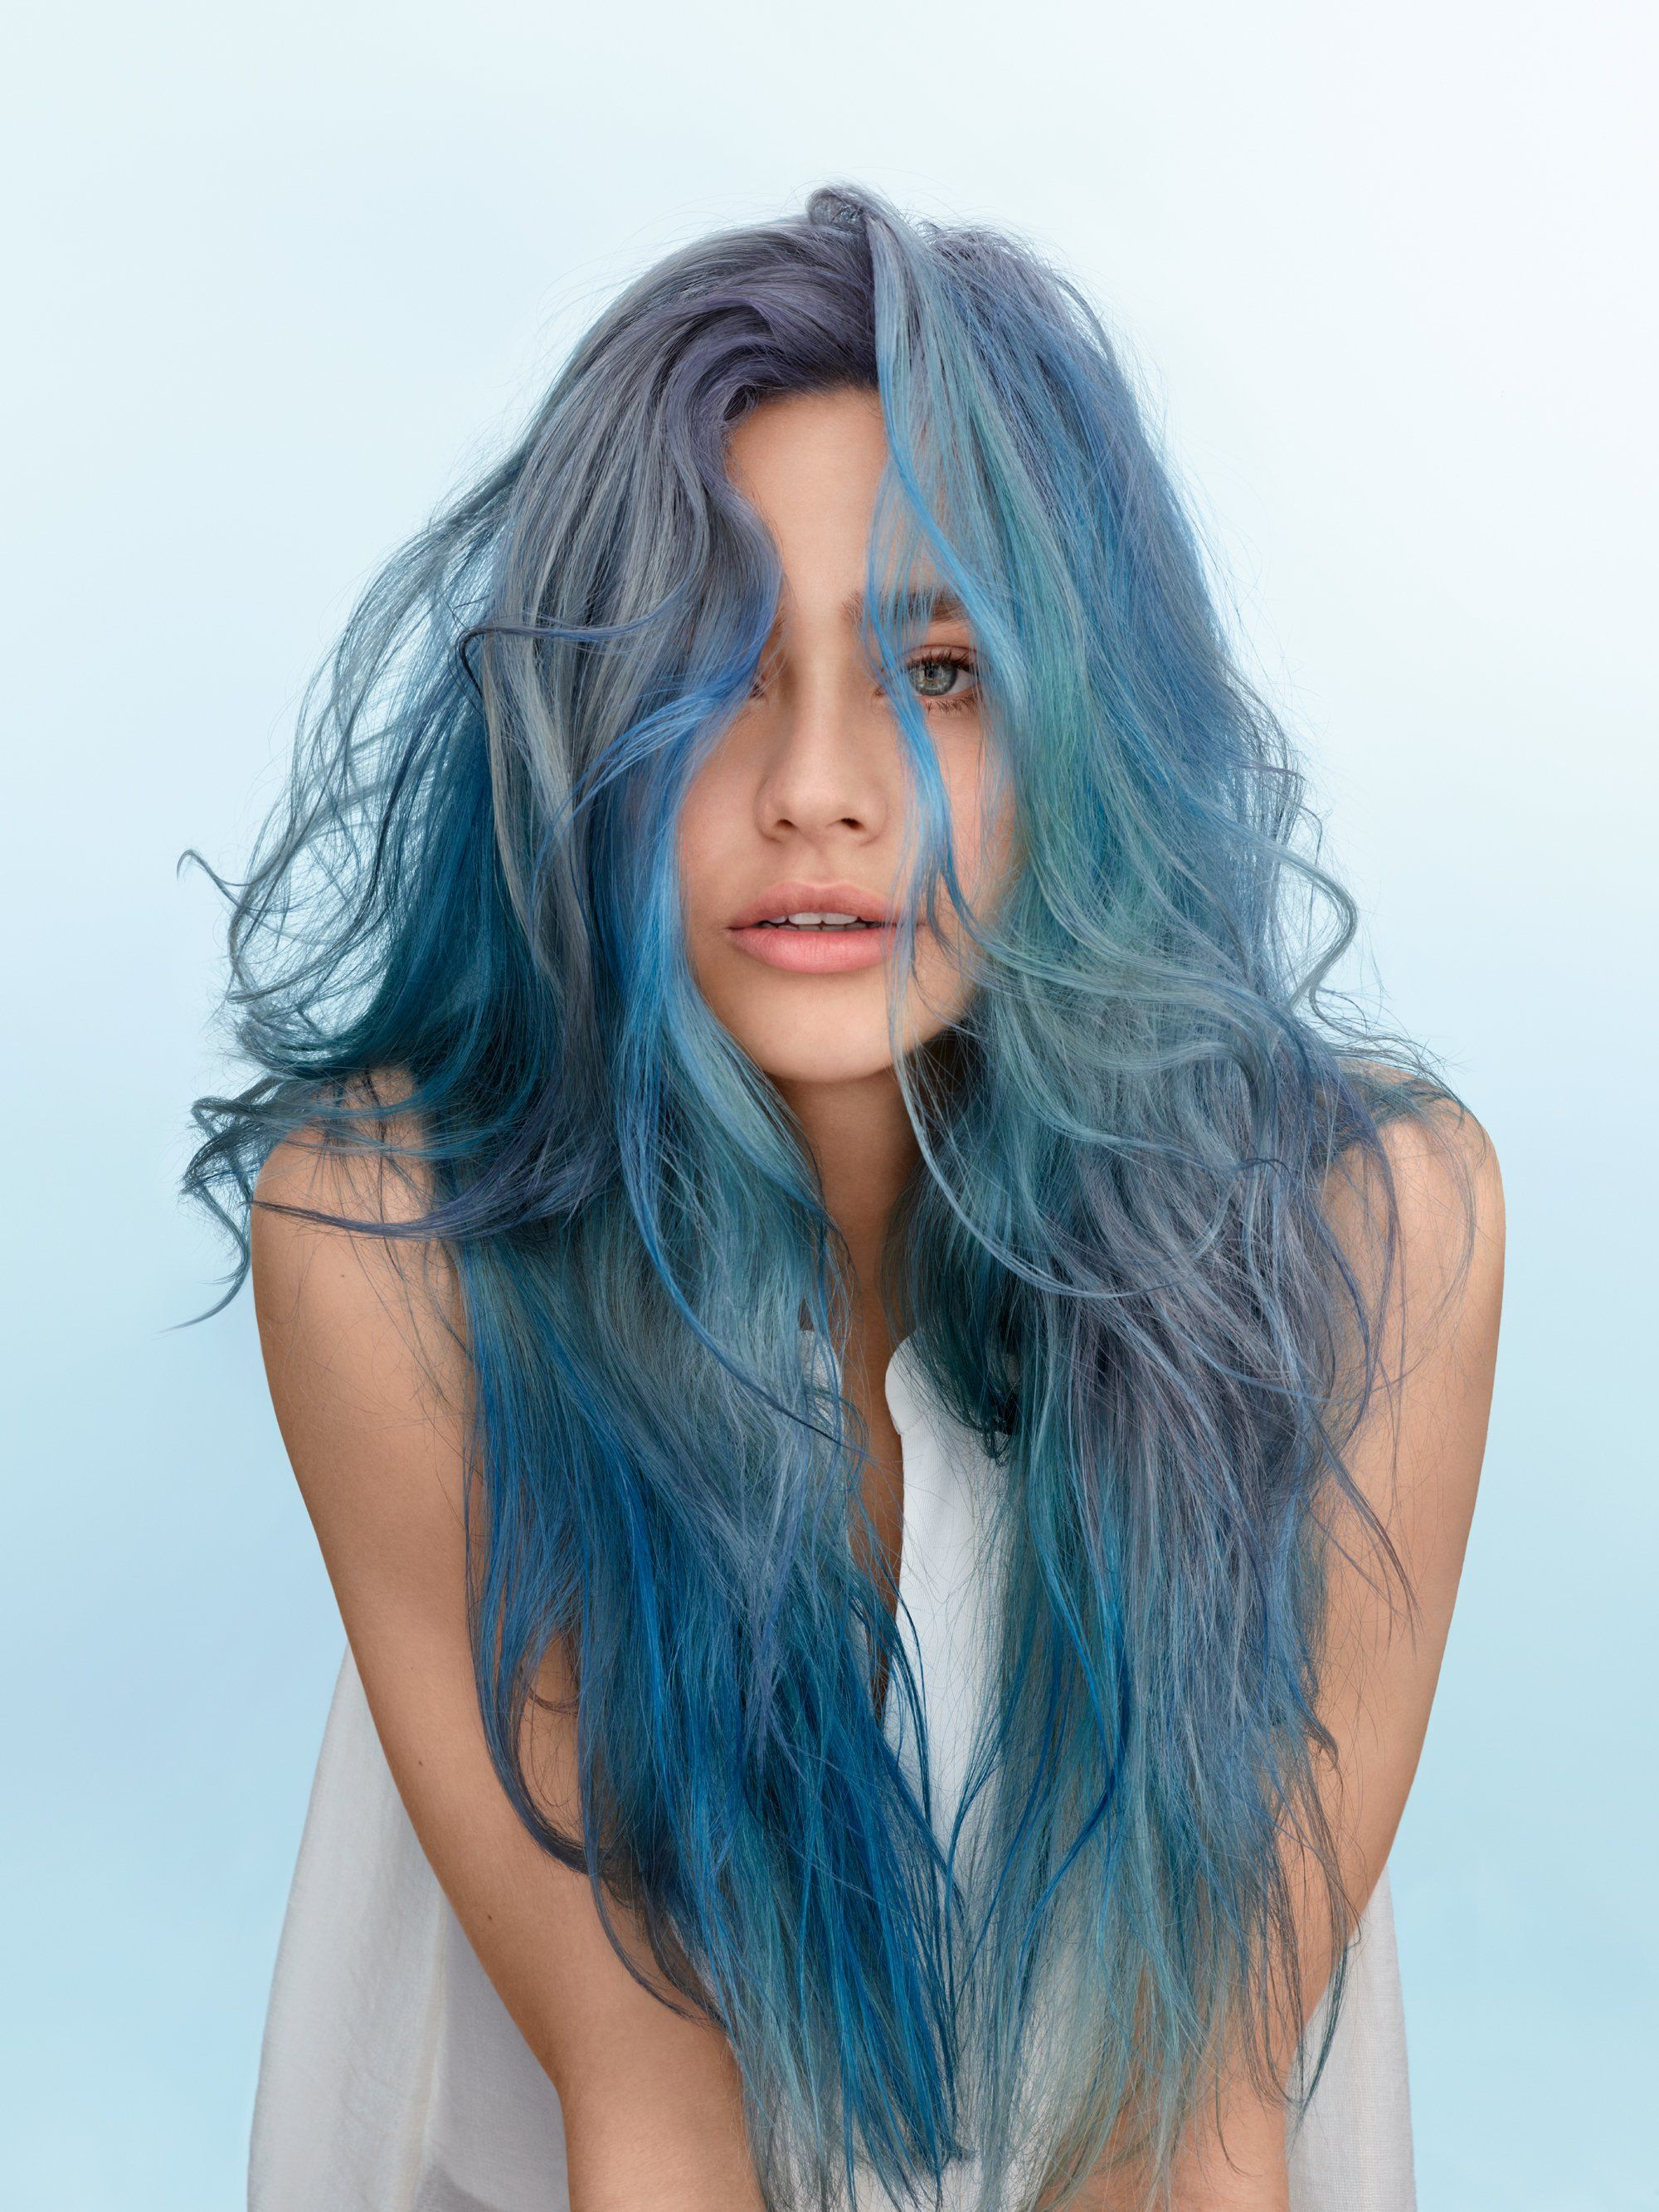 Enjoy the new color freedom with Wella Color Fresh CREATE ...